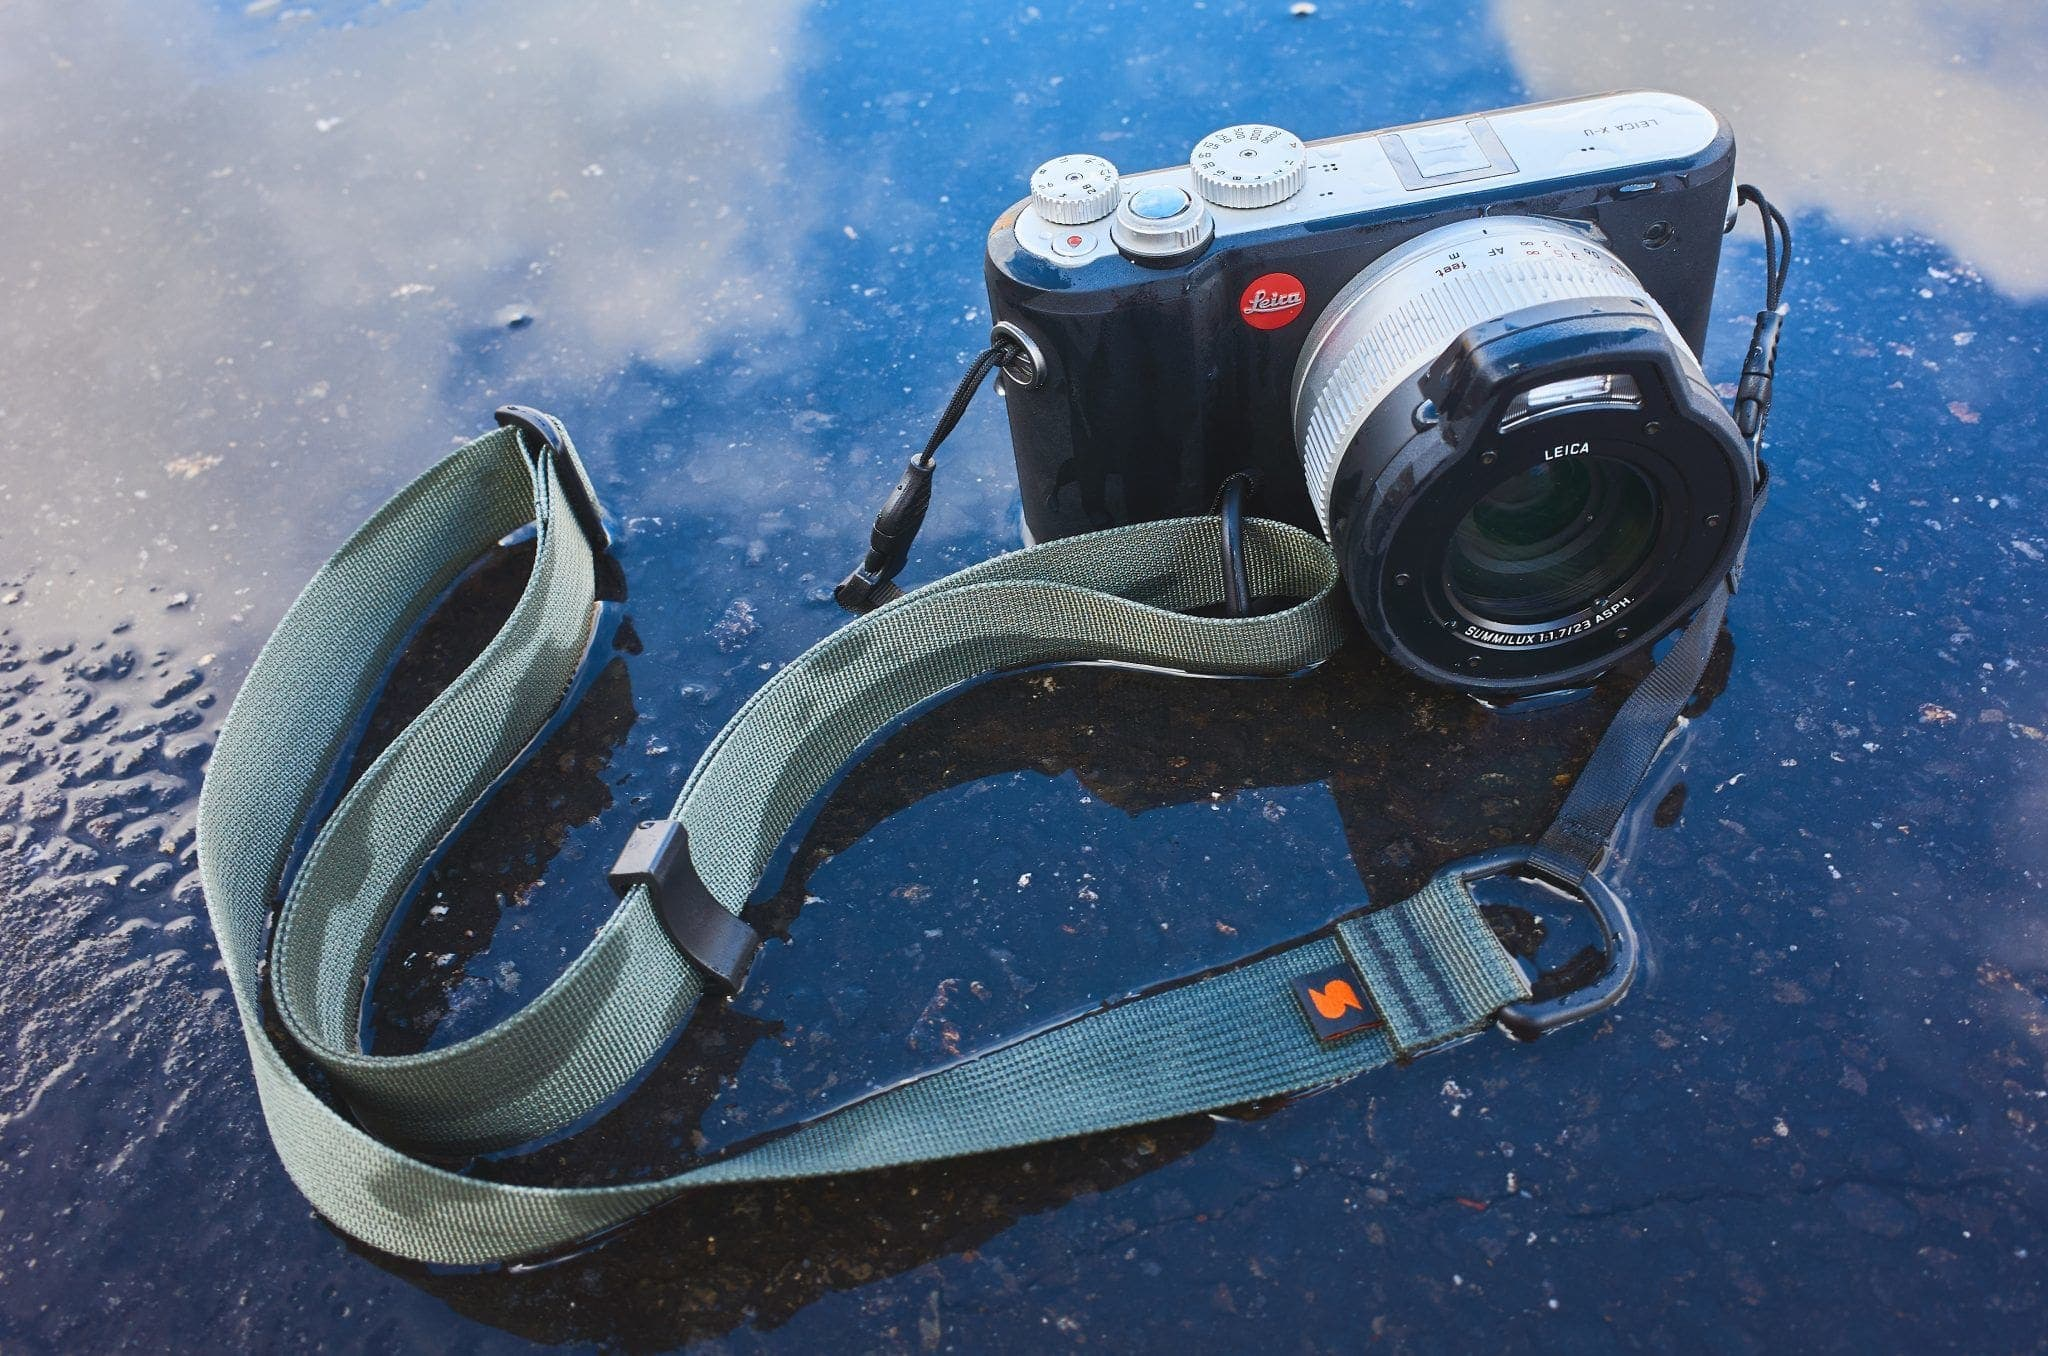 Waterproof Leica with Waterlogged M1a camera strap